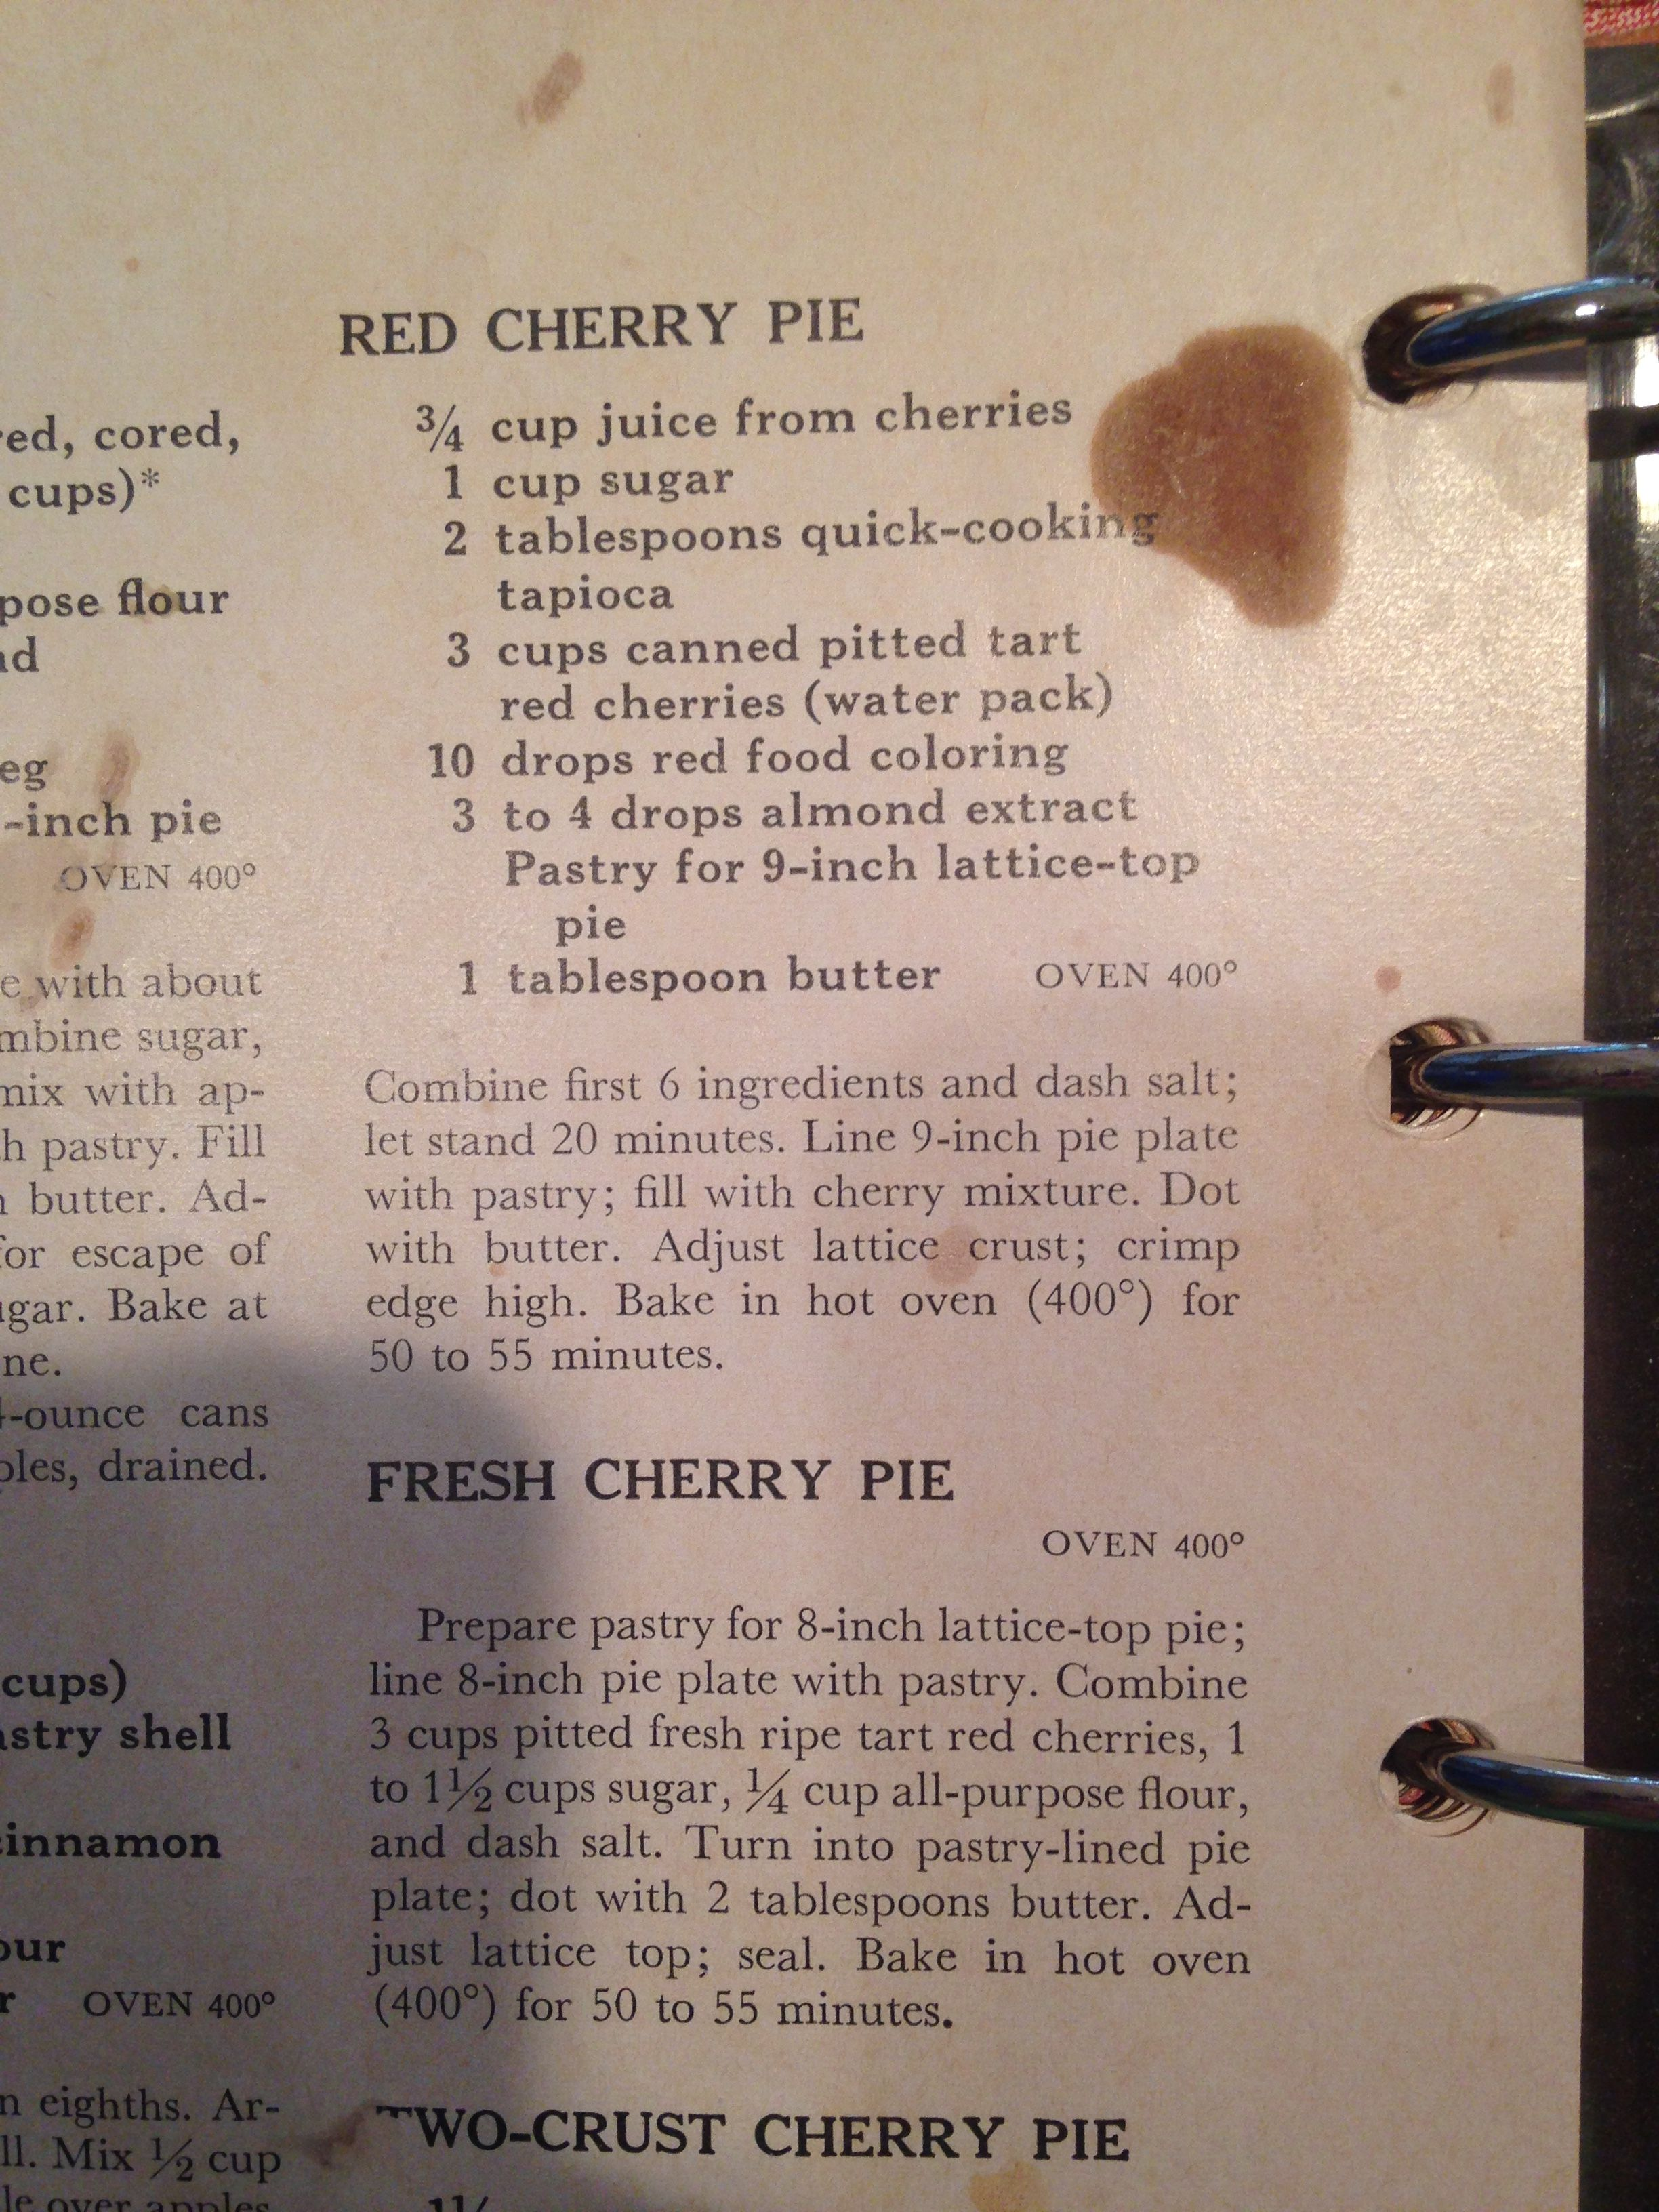 Pin By Stephanie Reed On Dessert Red Food Coloring Quick Cooking Cherry Pie